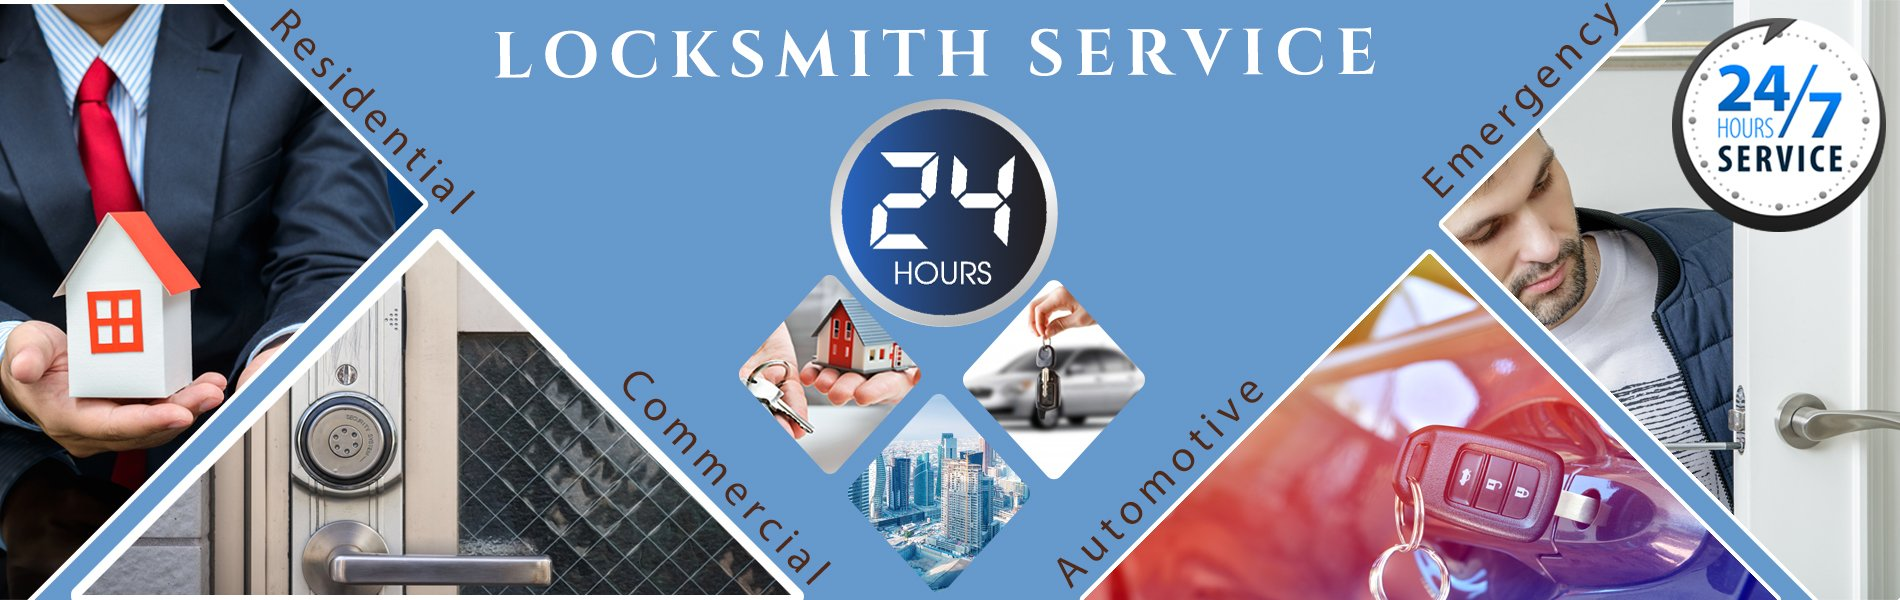 State Locksmith Services Bell, CA 323-741-3394